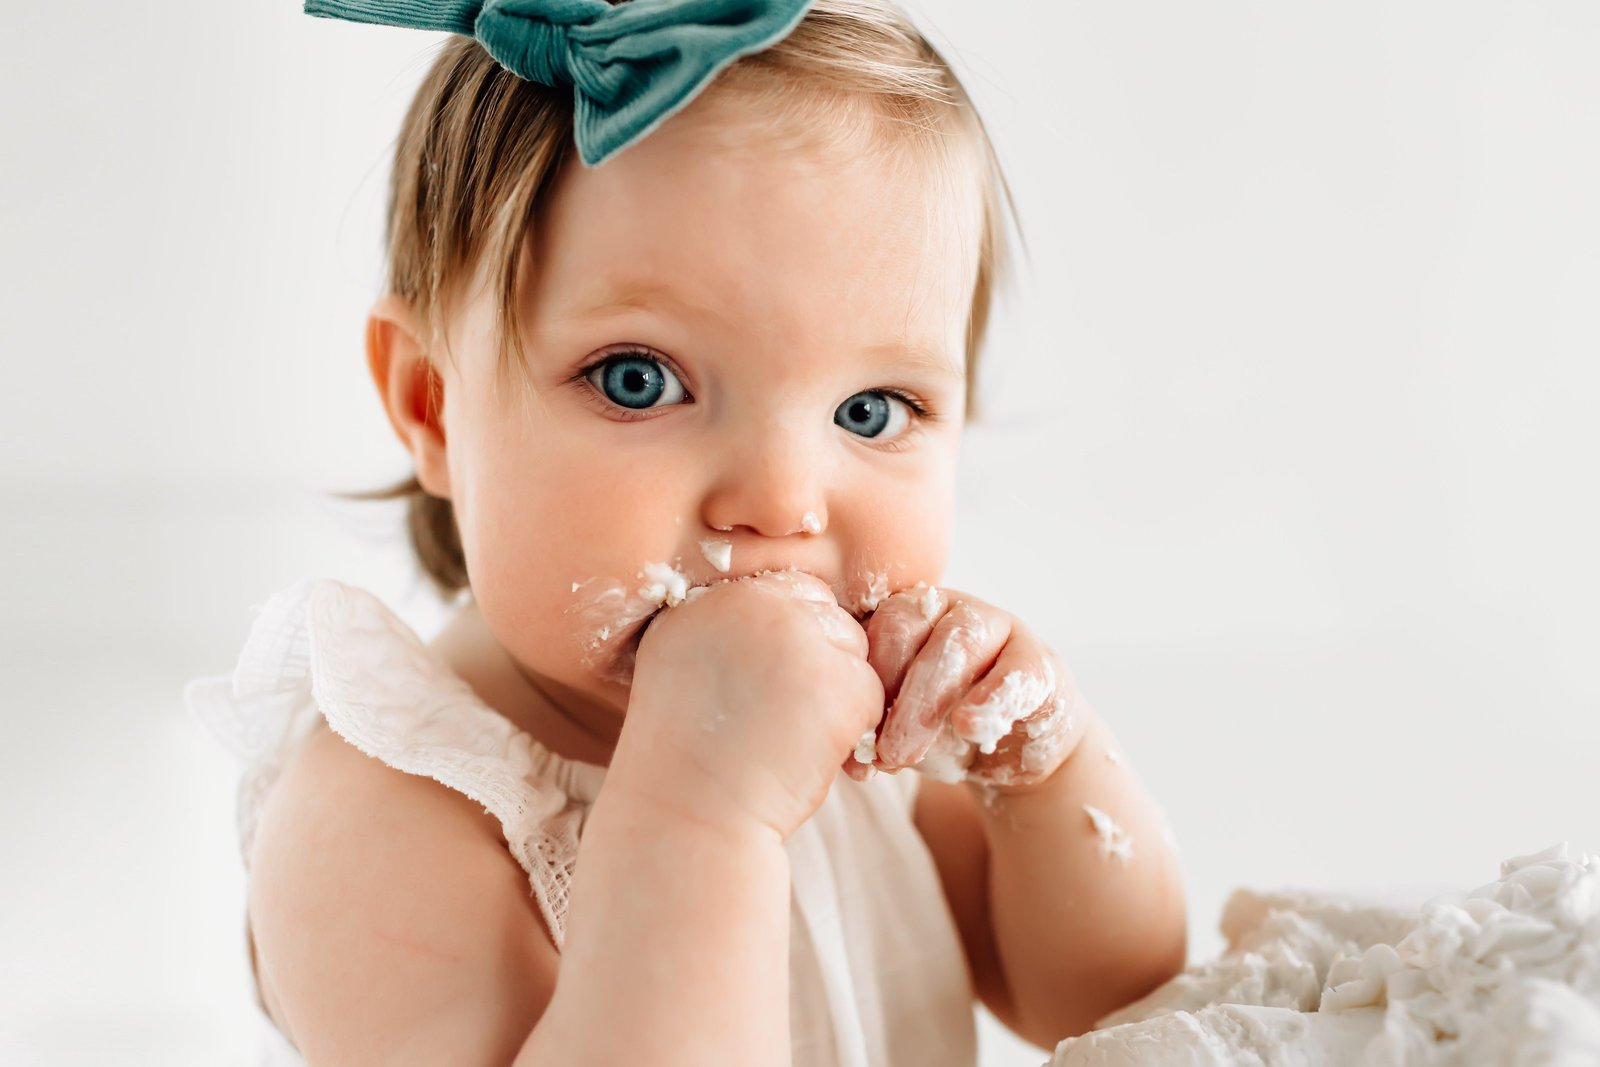 St_Louis_Baby_Photographer_Kelly_Laramore_Photography_113